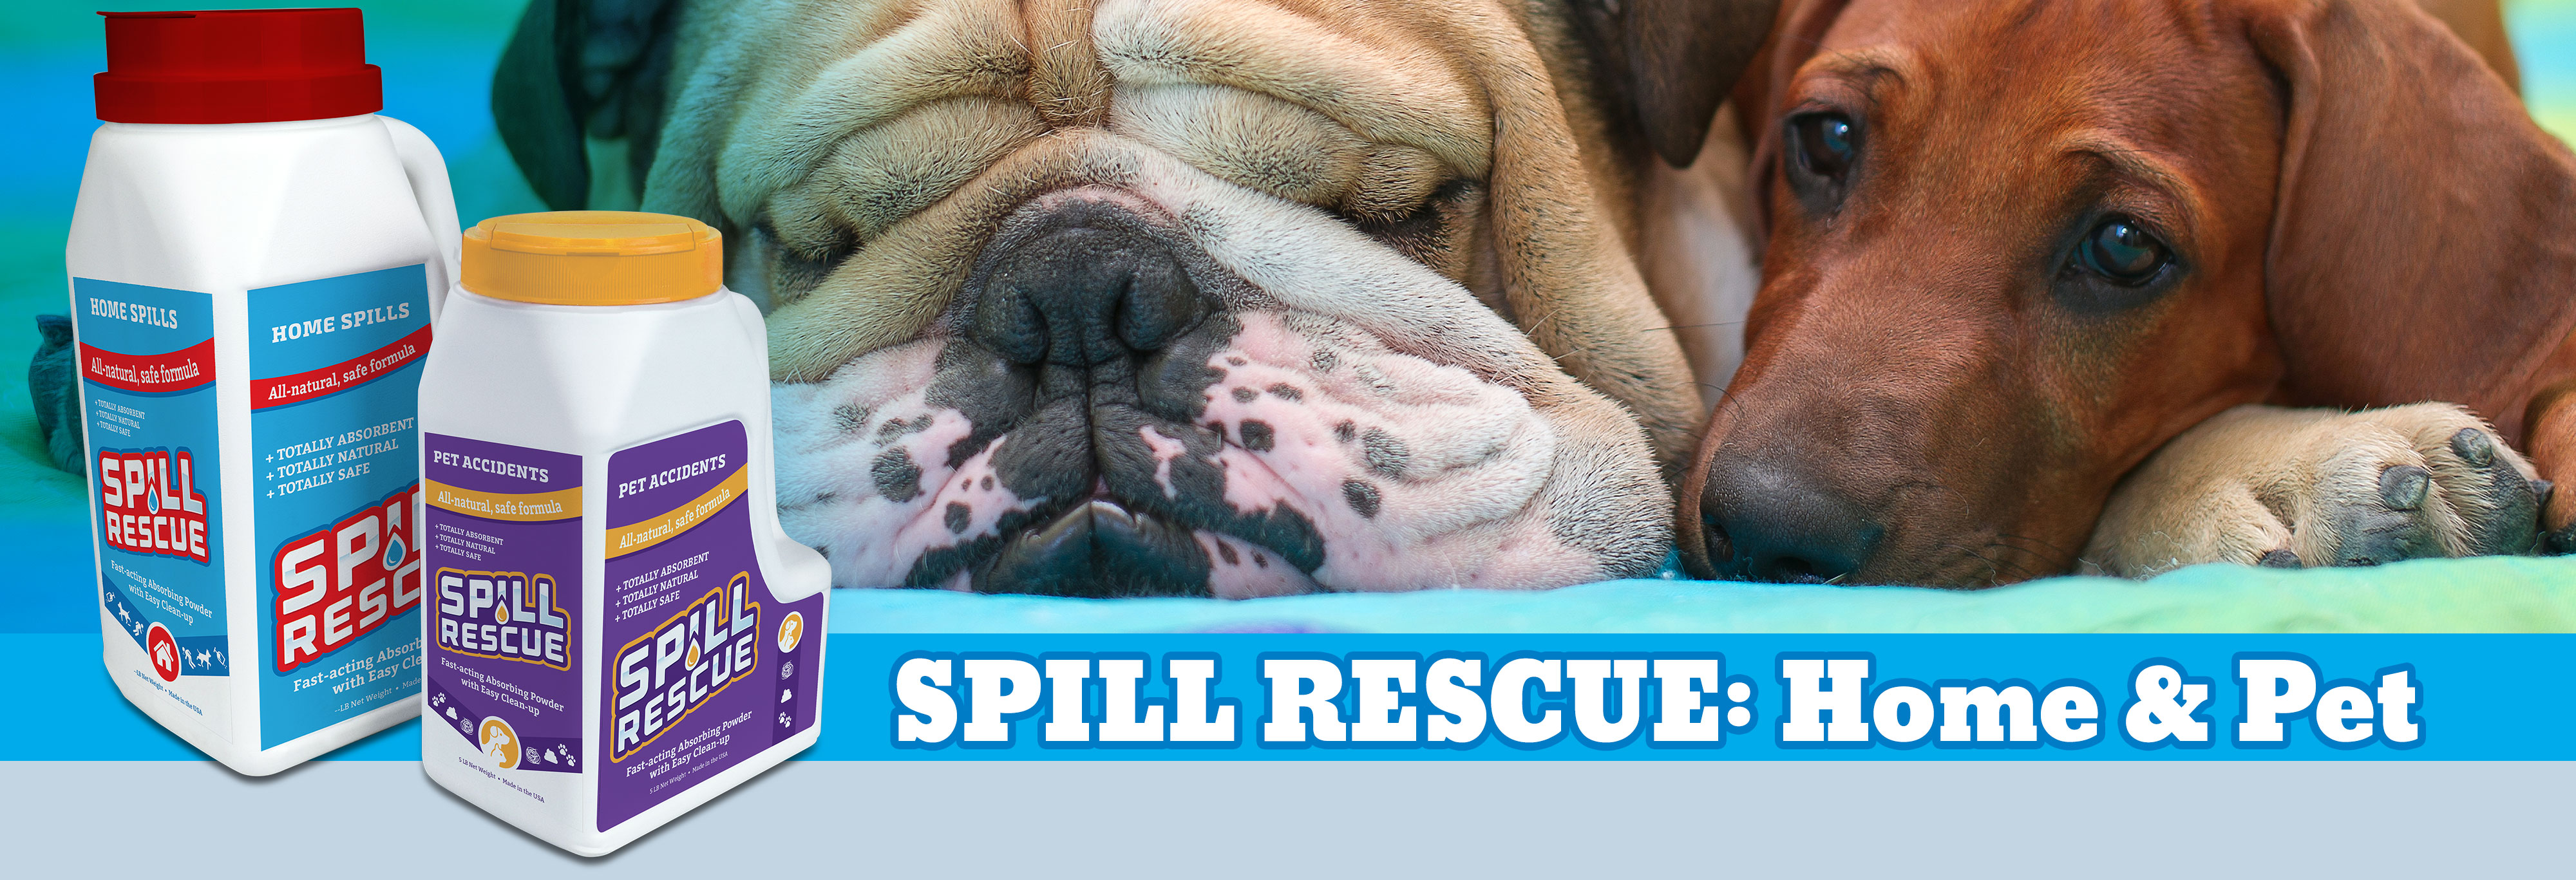 PureSky Products Spill Rescue for Home and Pets